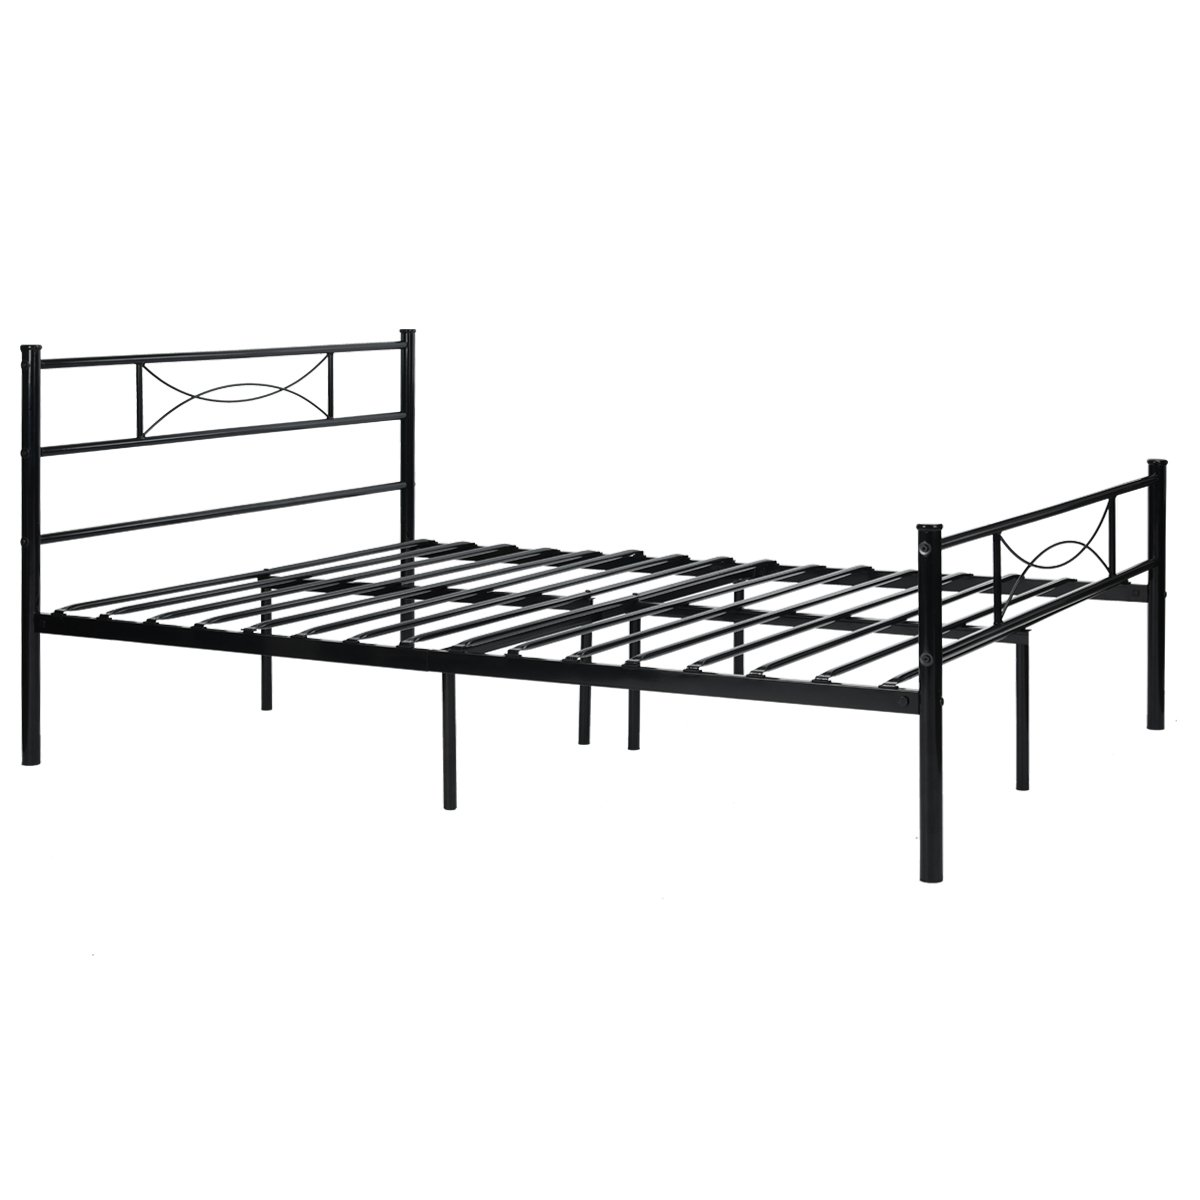 9d5d0d4c975 SimLife Steel Double Platform Box Spring Needed Black Metal Bed Frame Full  Size 10 Legs Two Headboards Mattress Foundation - unknown   Bed Frames    Home ...